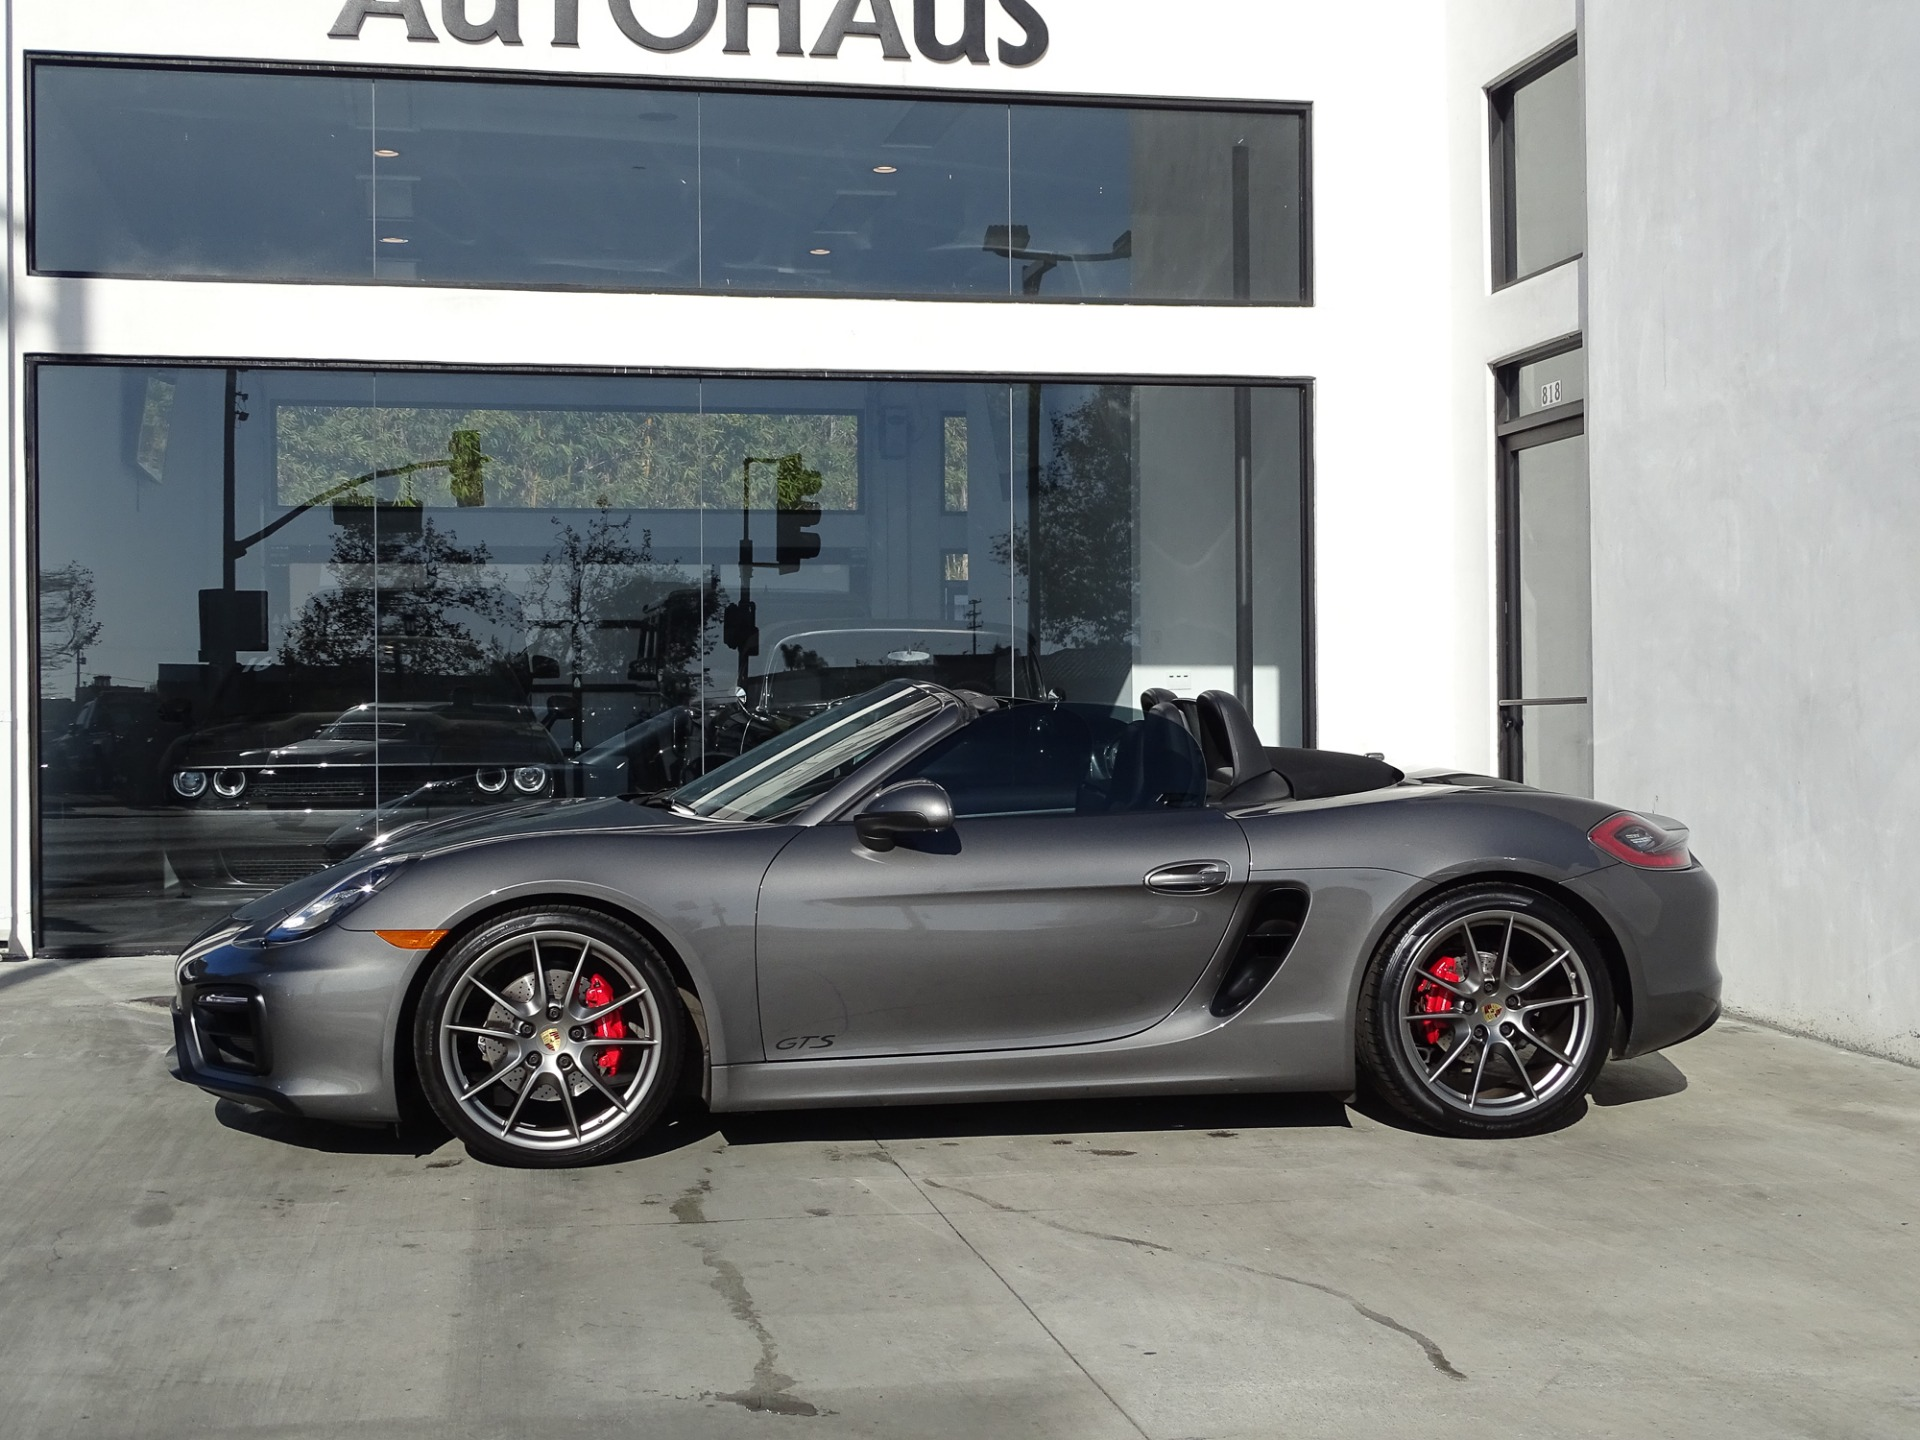 Used Car Value By Vin >> 2015 Porsche Boxster GTS Stock # 6343 for sale near ...